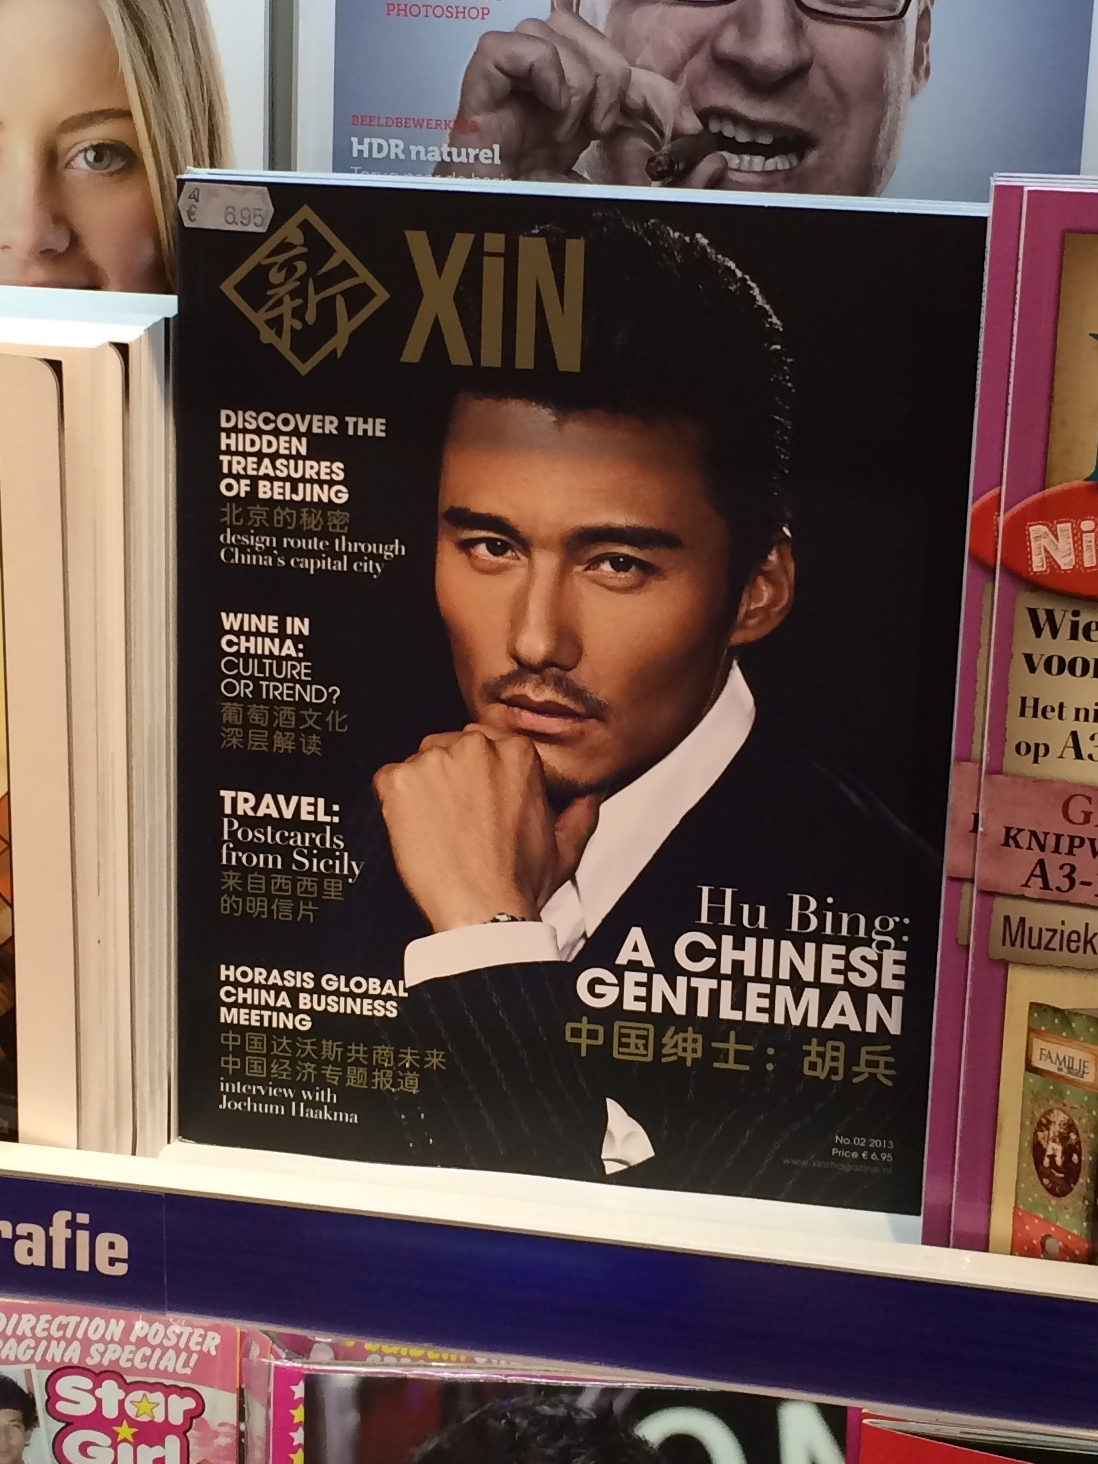 xin cover